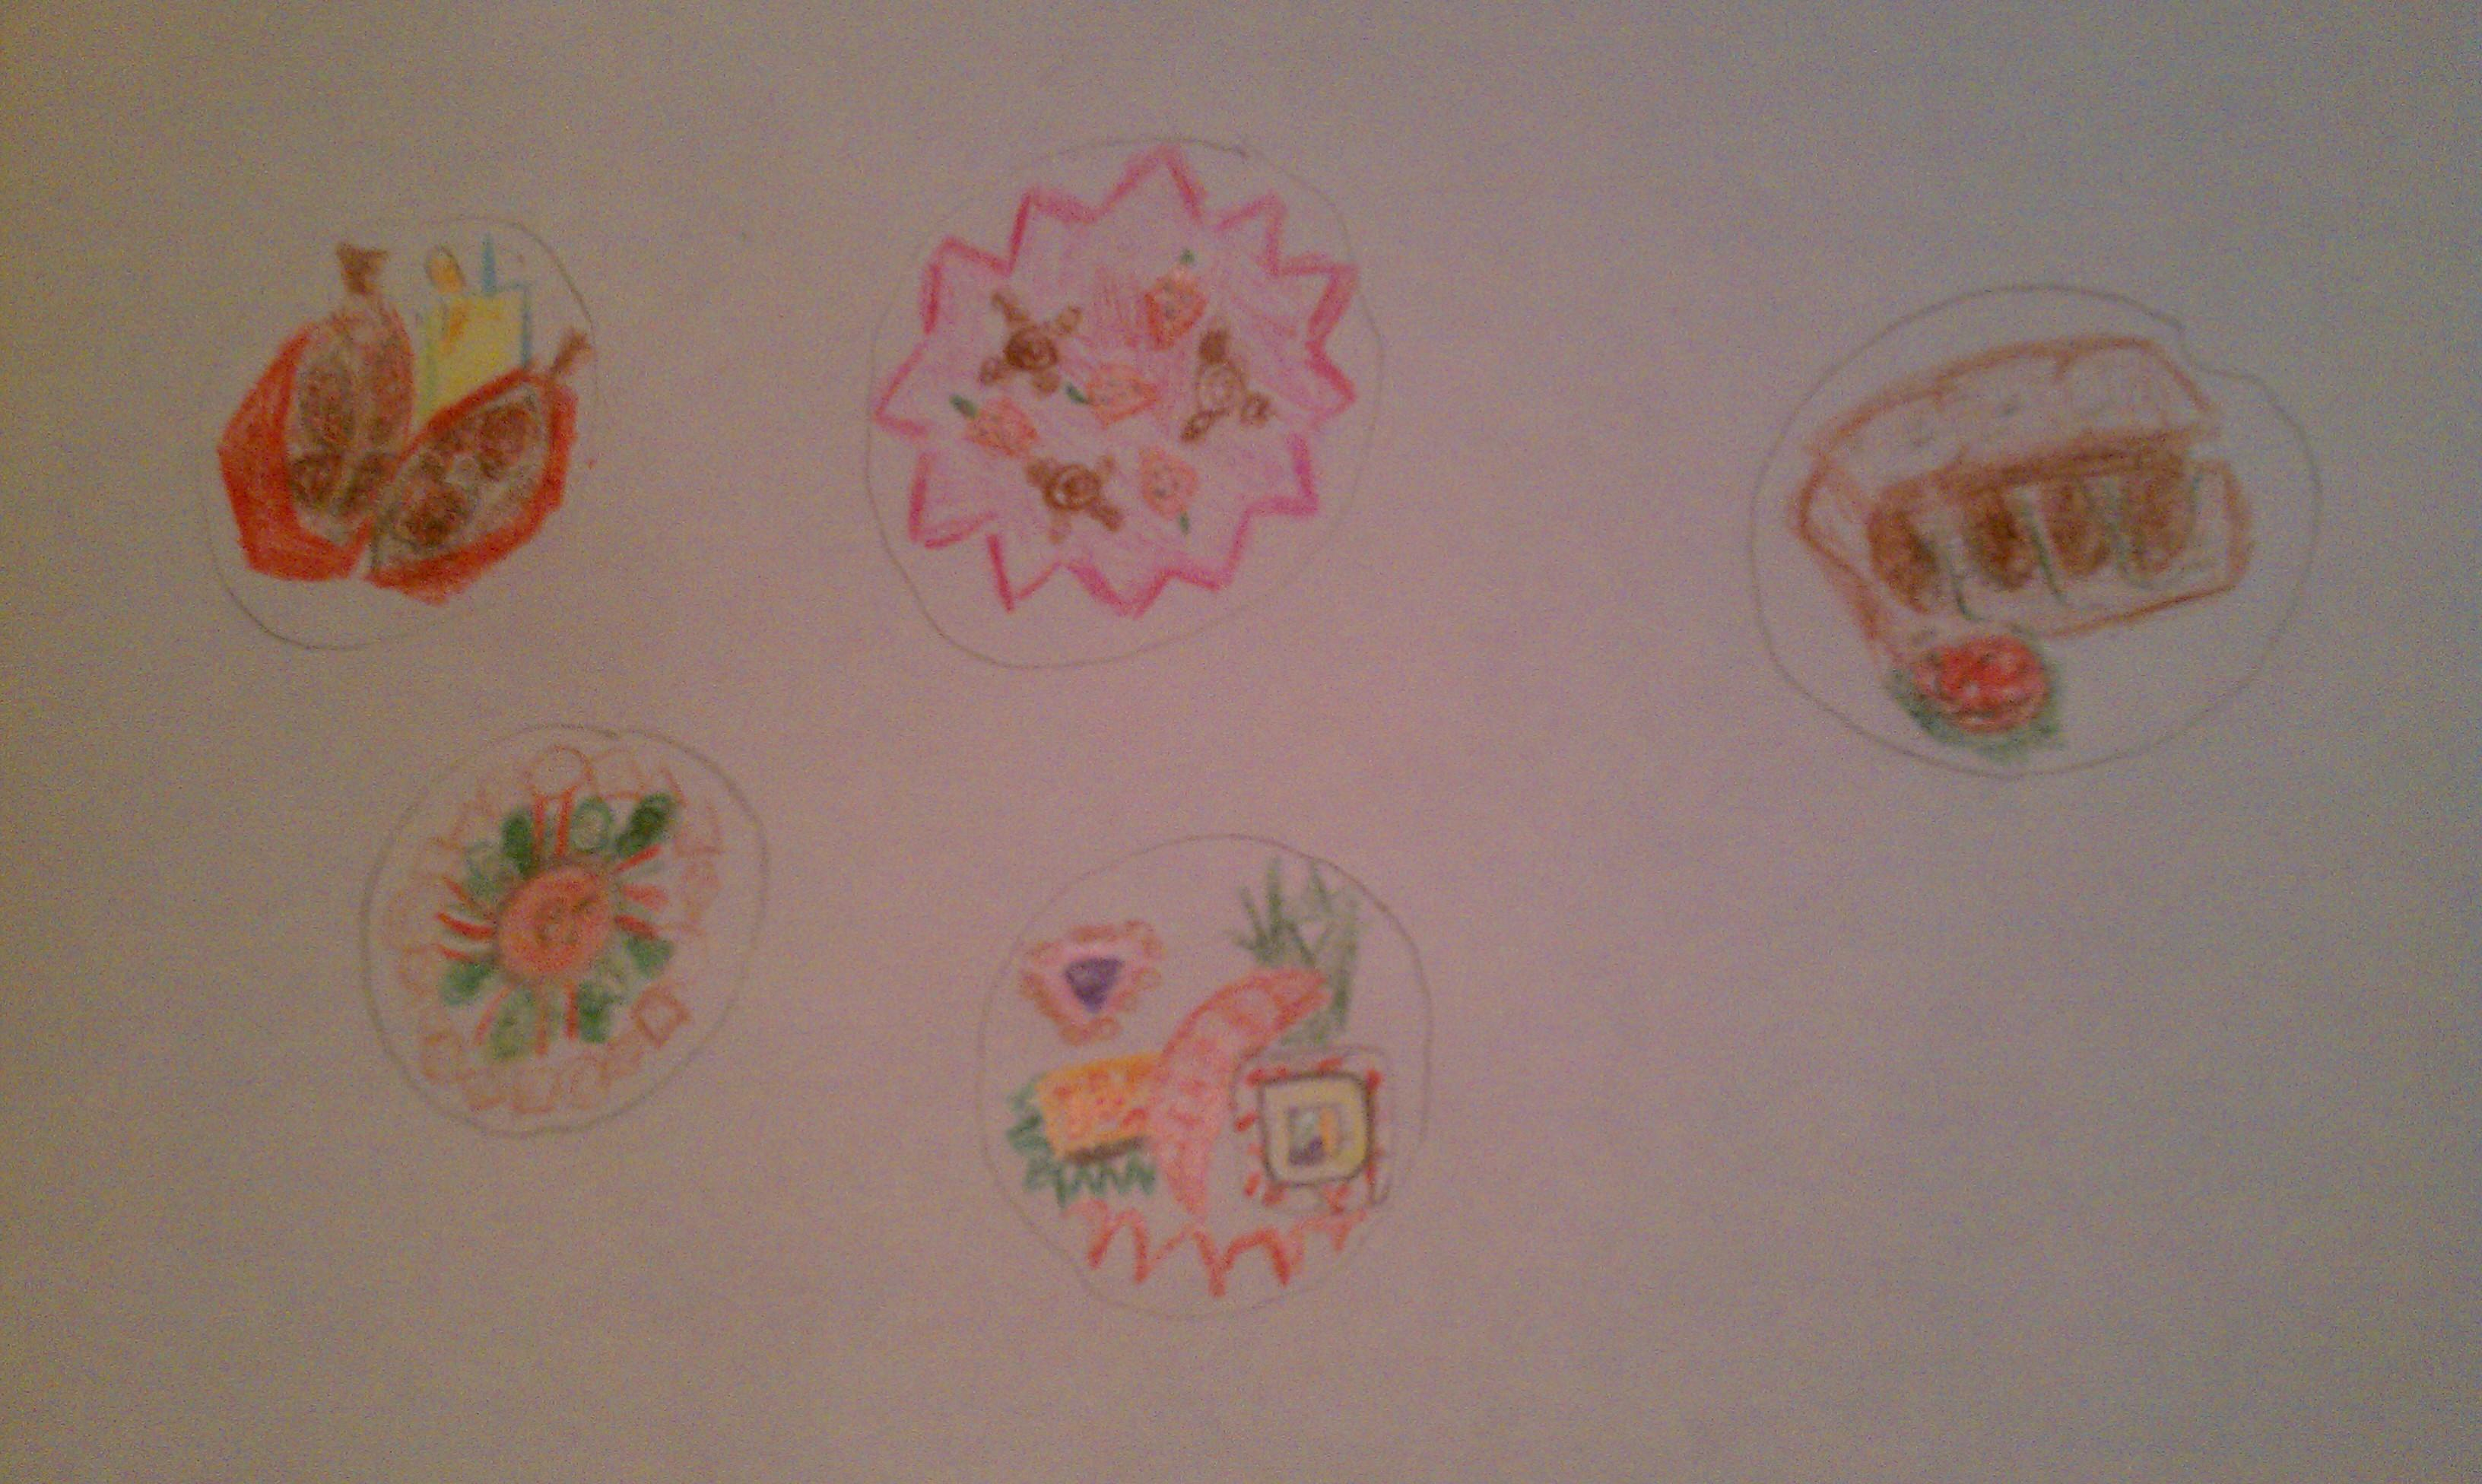 Foreign Mean Cuisine - image 1 - student project